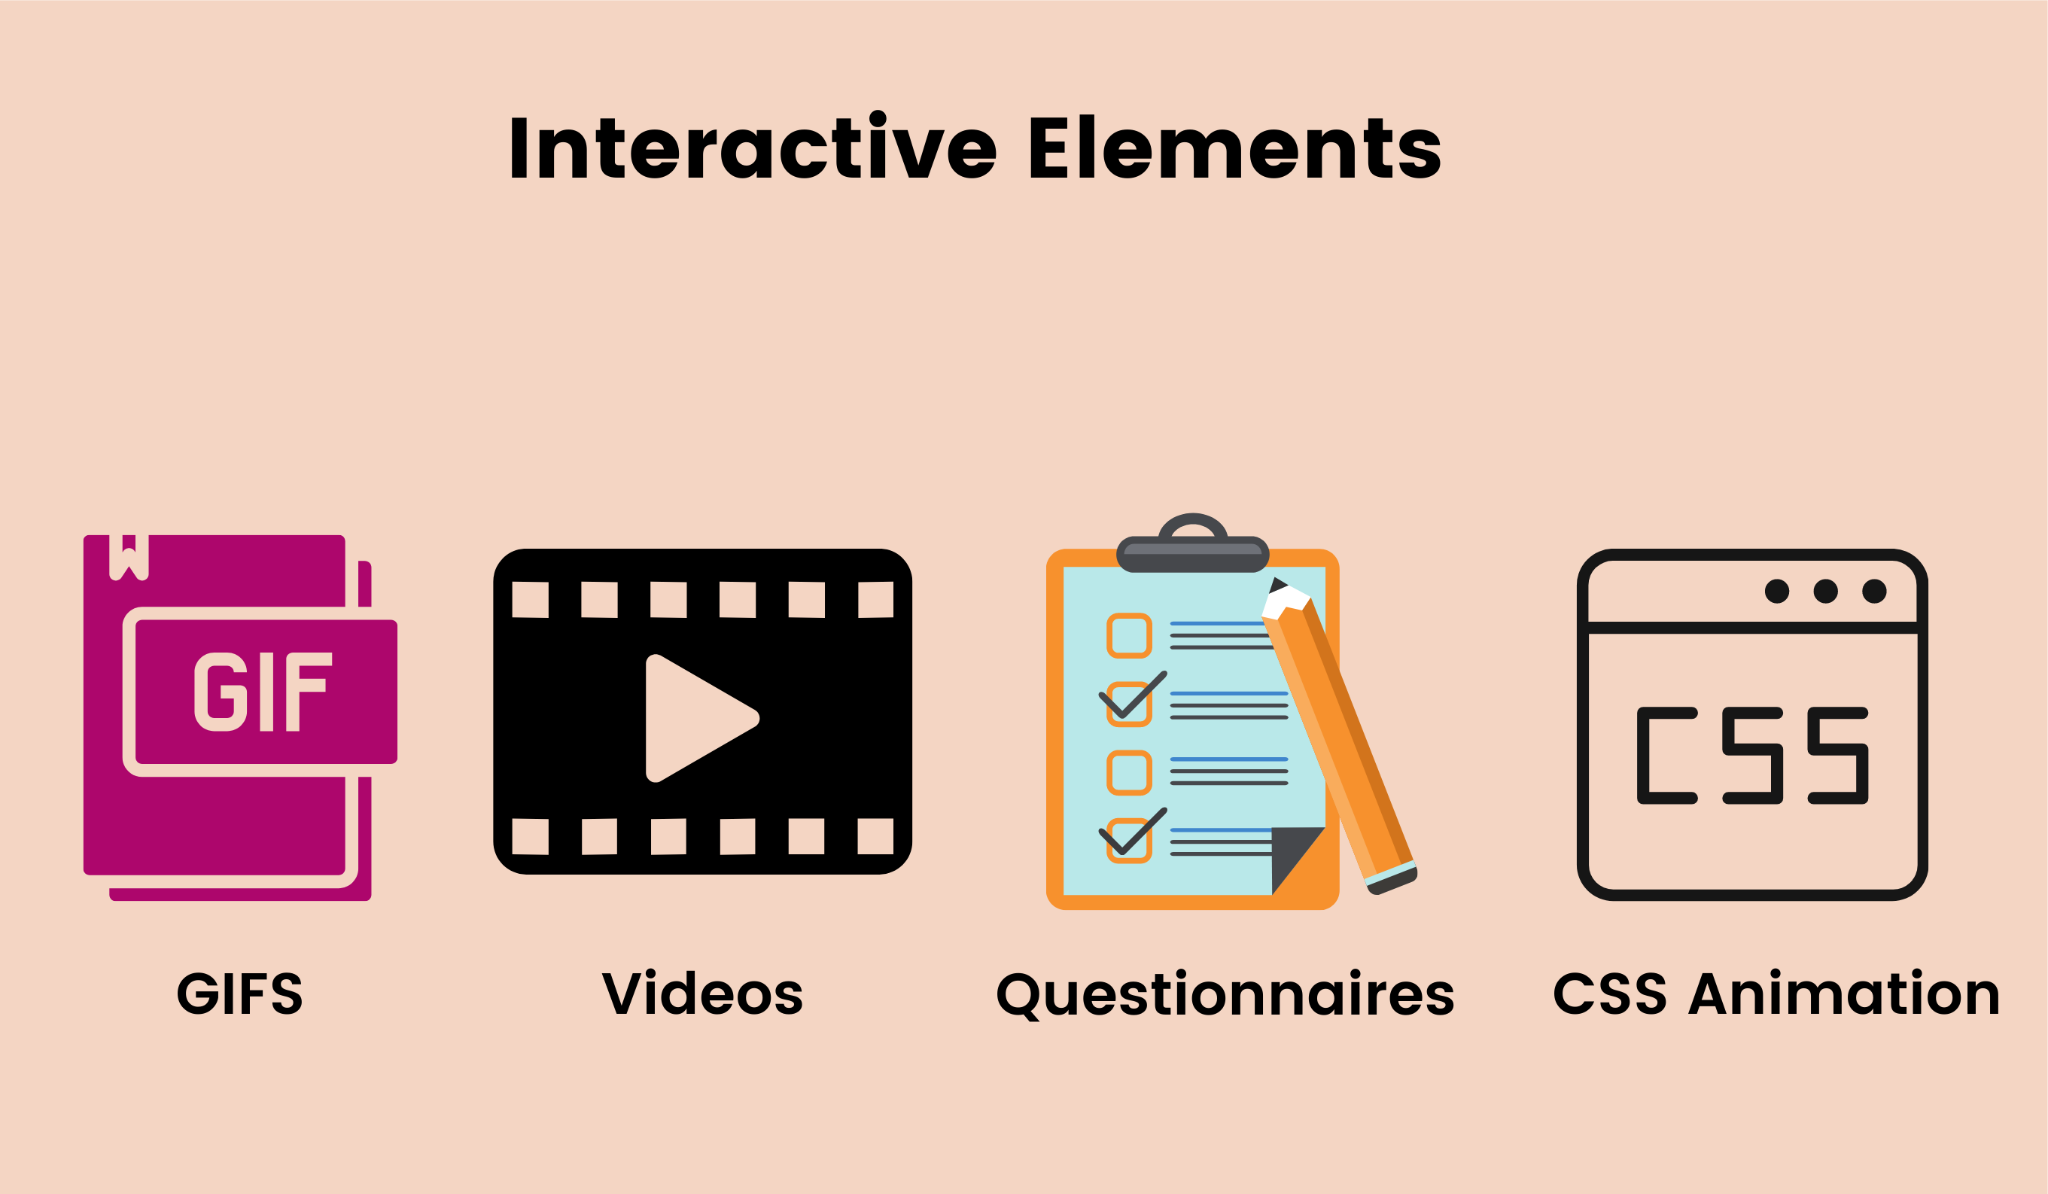 4 types of interactive elements